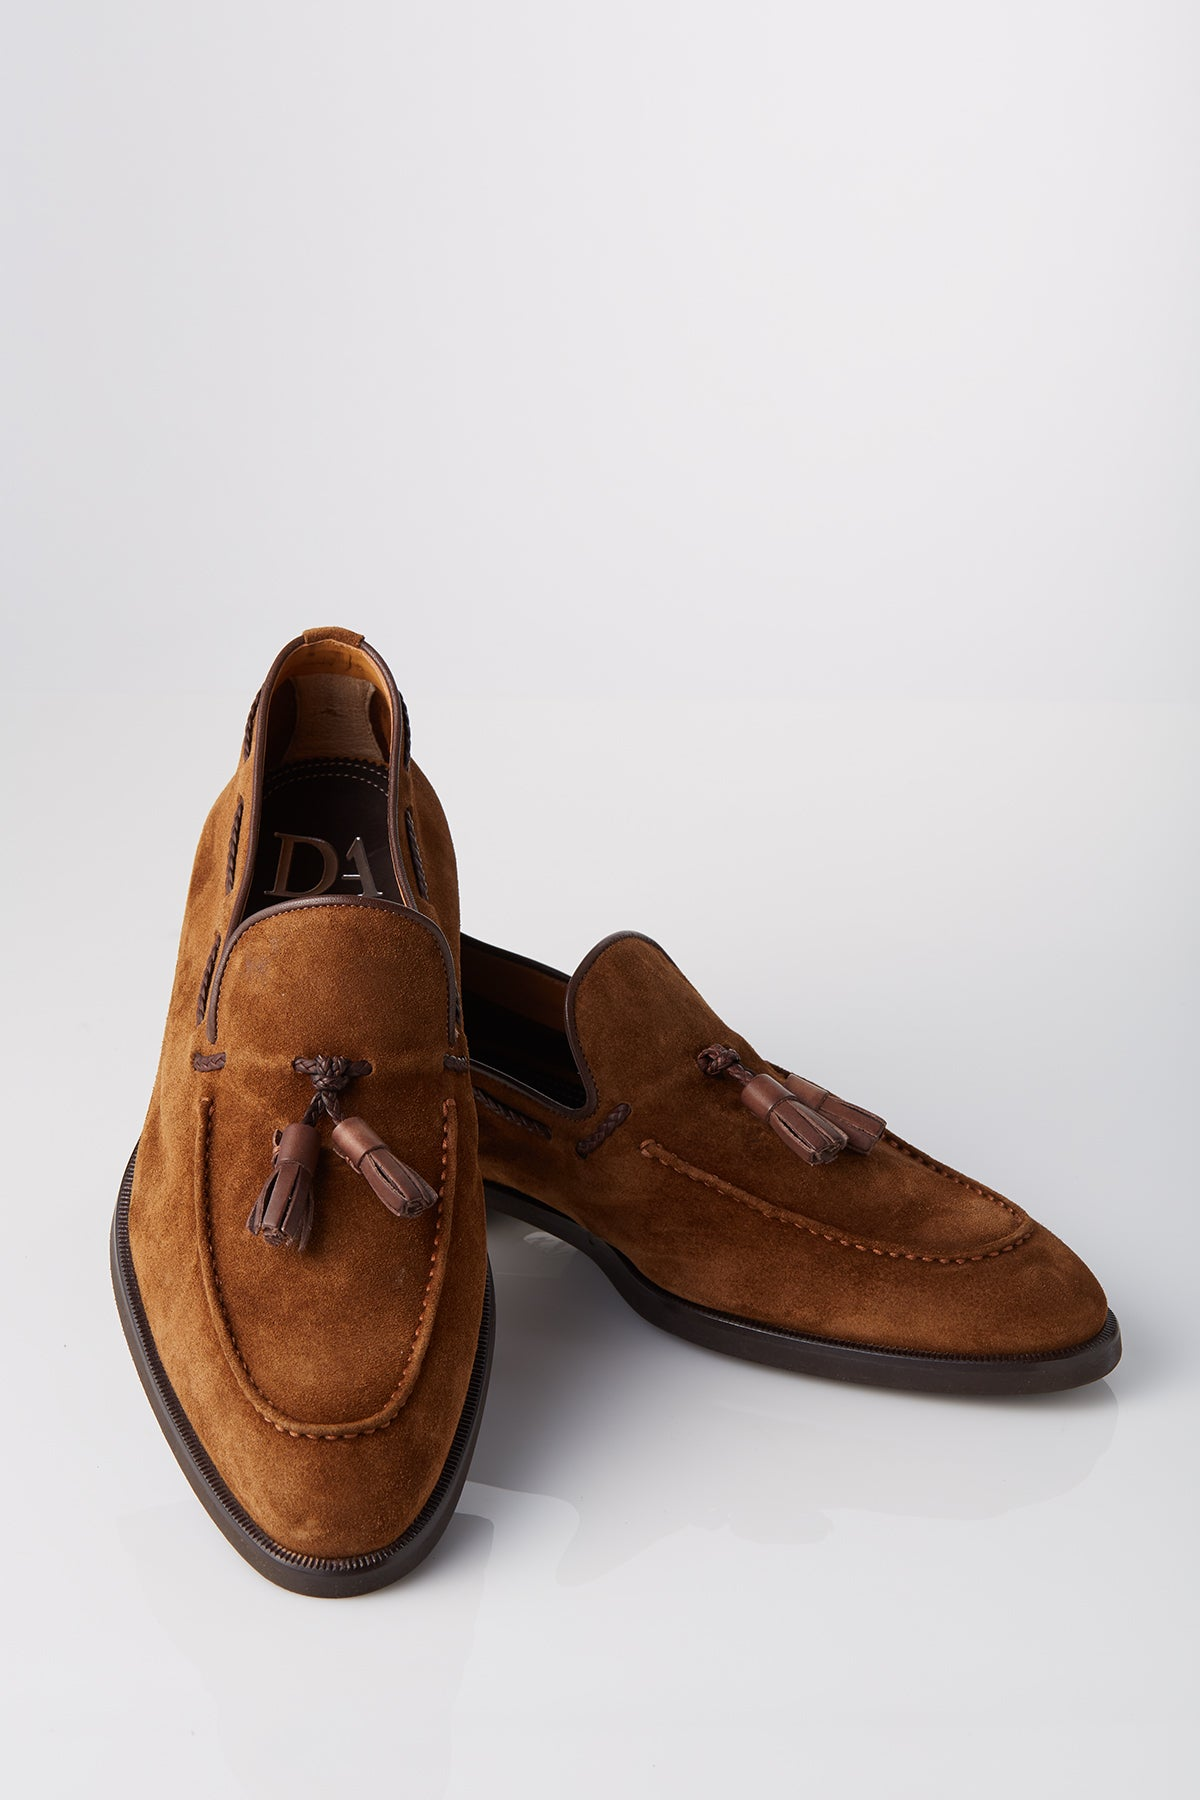 David August Suede Tassel Loafer in Cacao Brown Di Bianco